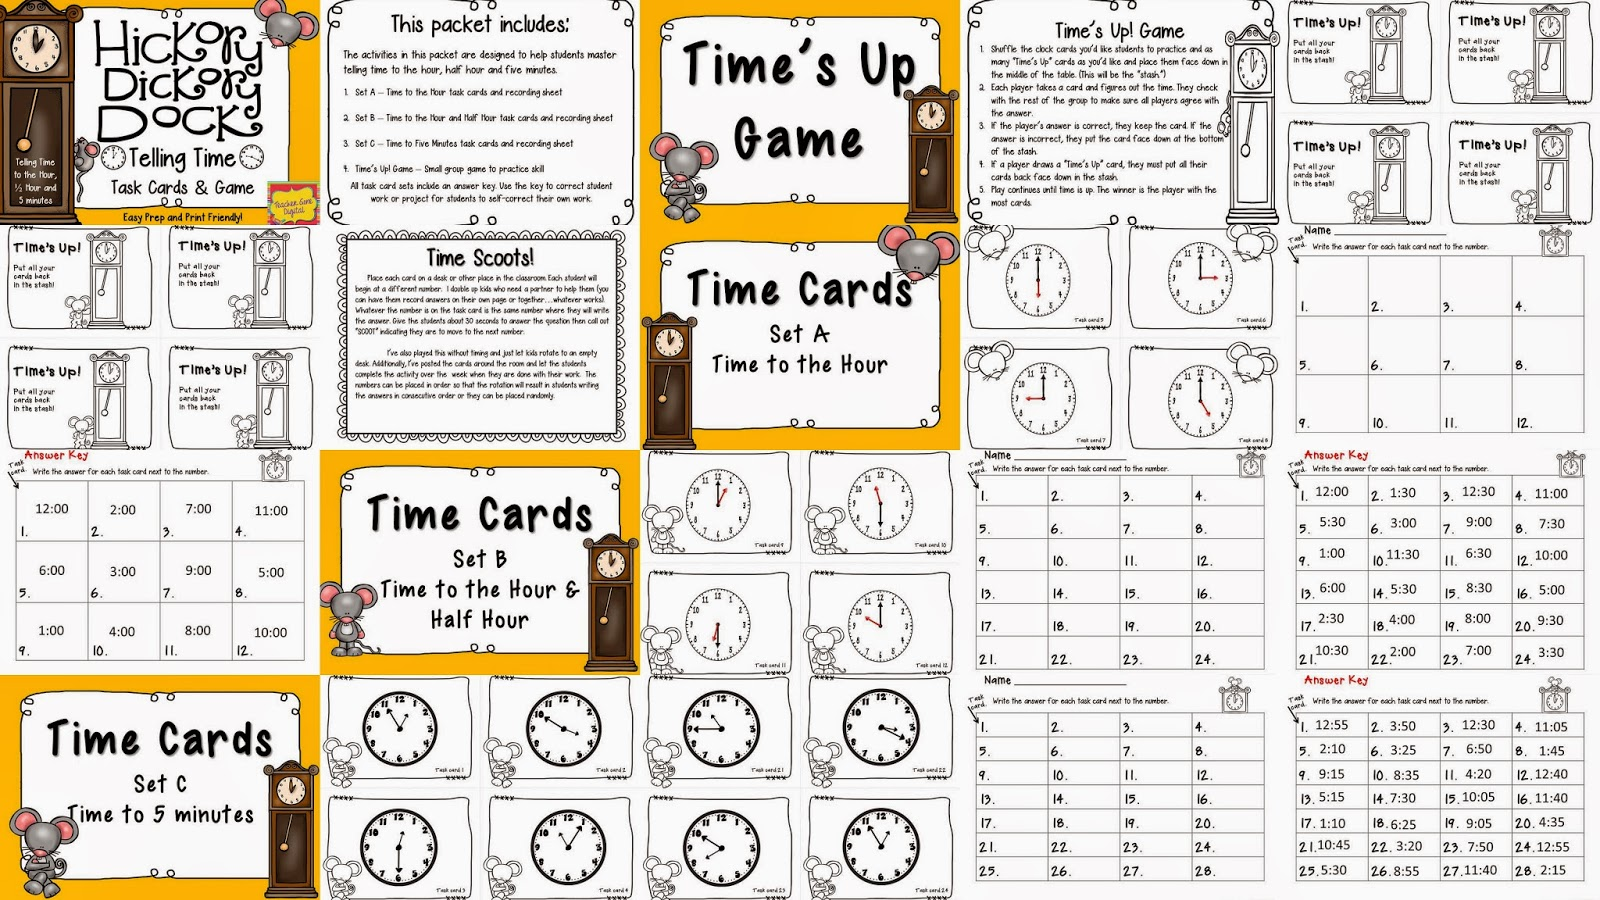 https://www.teacherspayteachers.com/Product/Hickory-Dickory-Dock-Telling-Time-Activities-and-Game-1752728